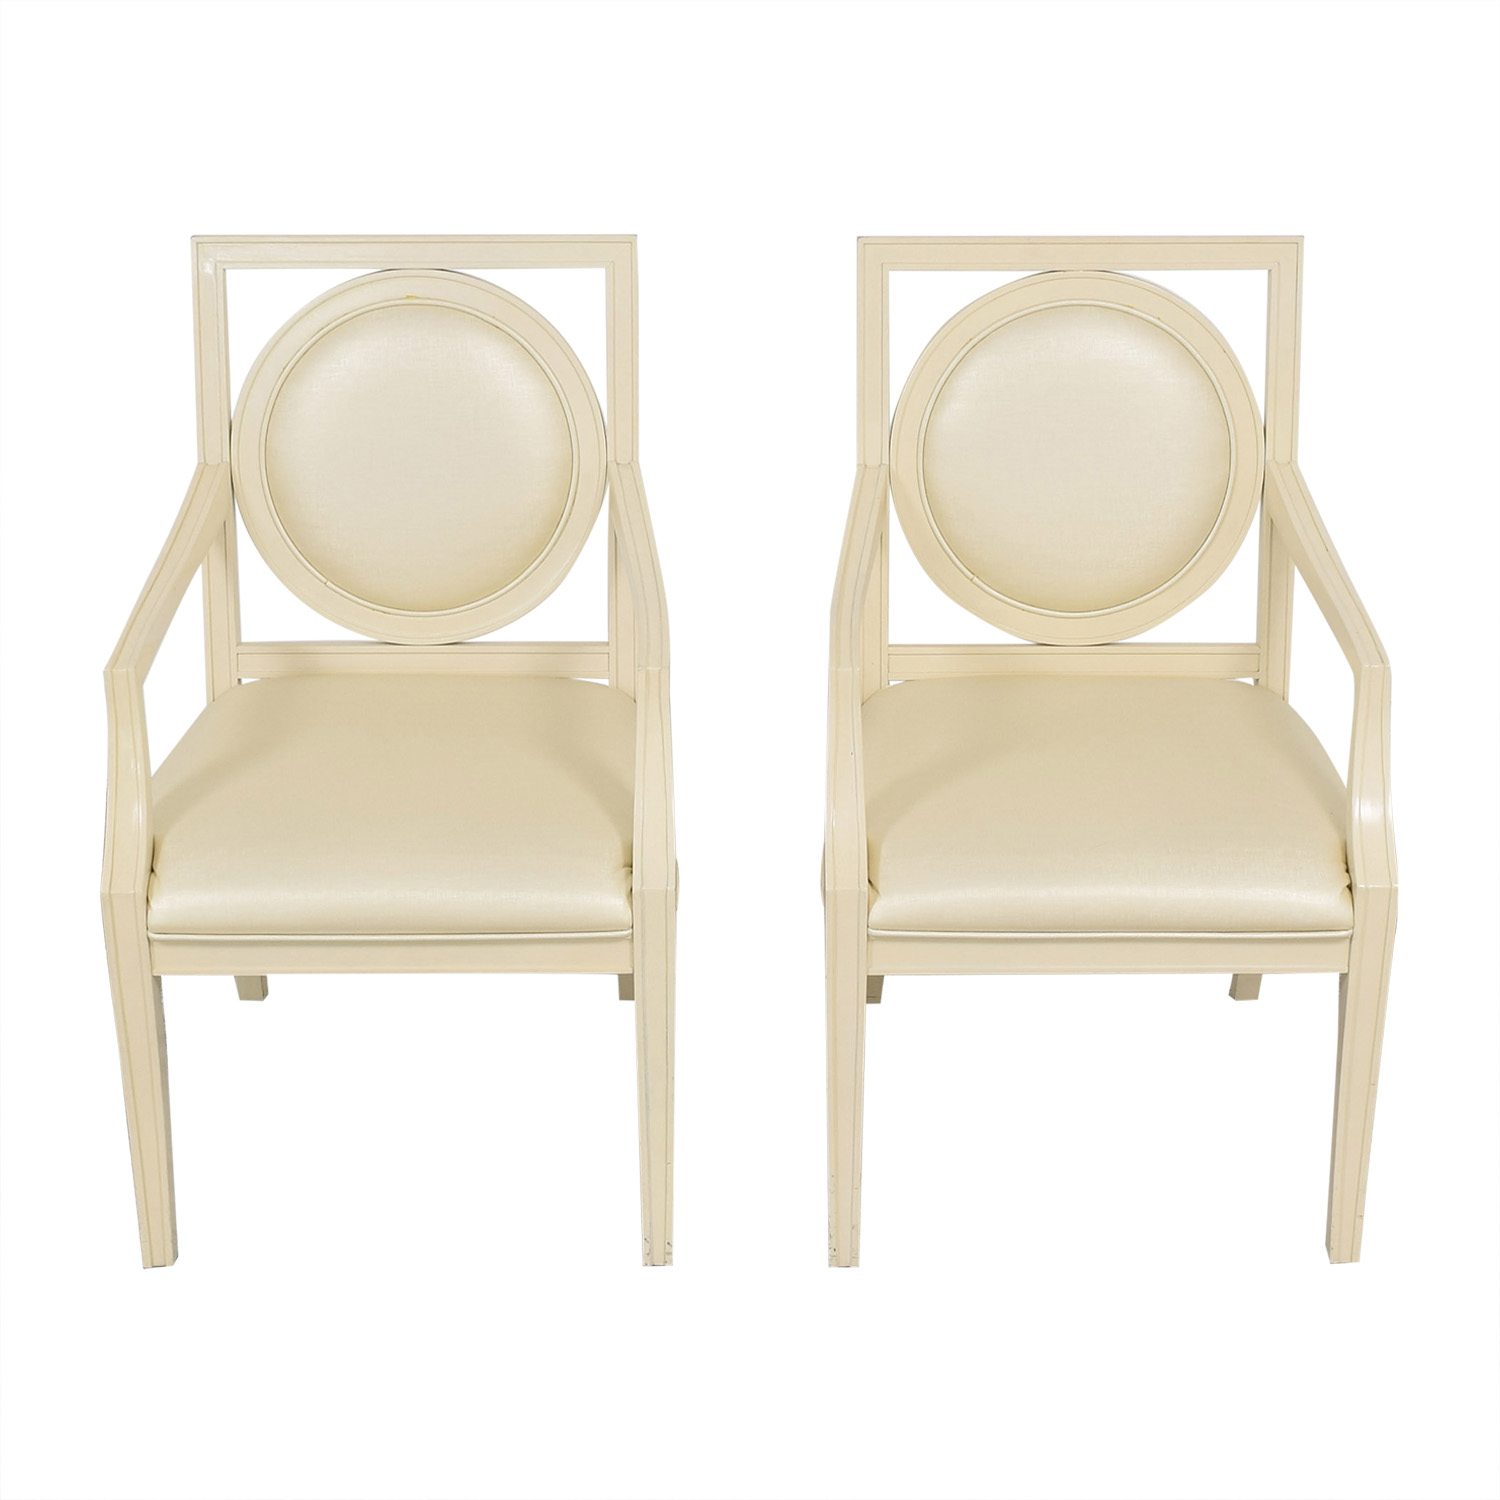 Bernhardt Bernhardt Salon Arm Chairs used